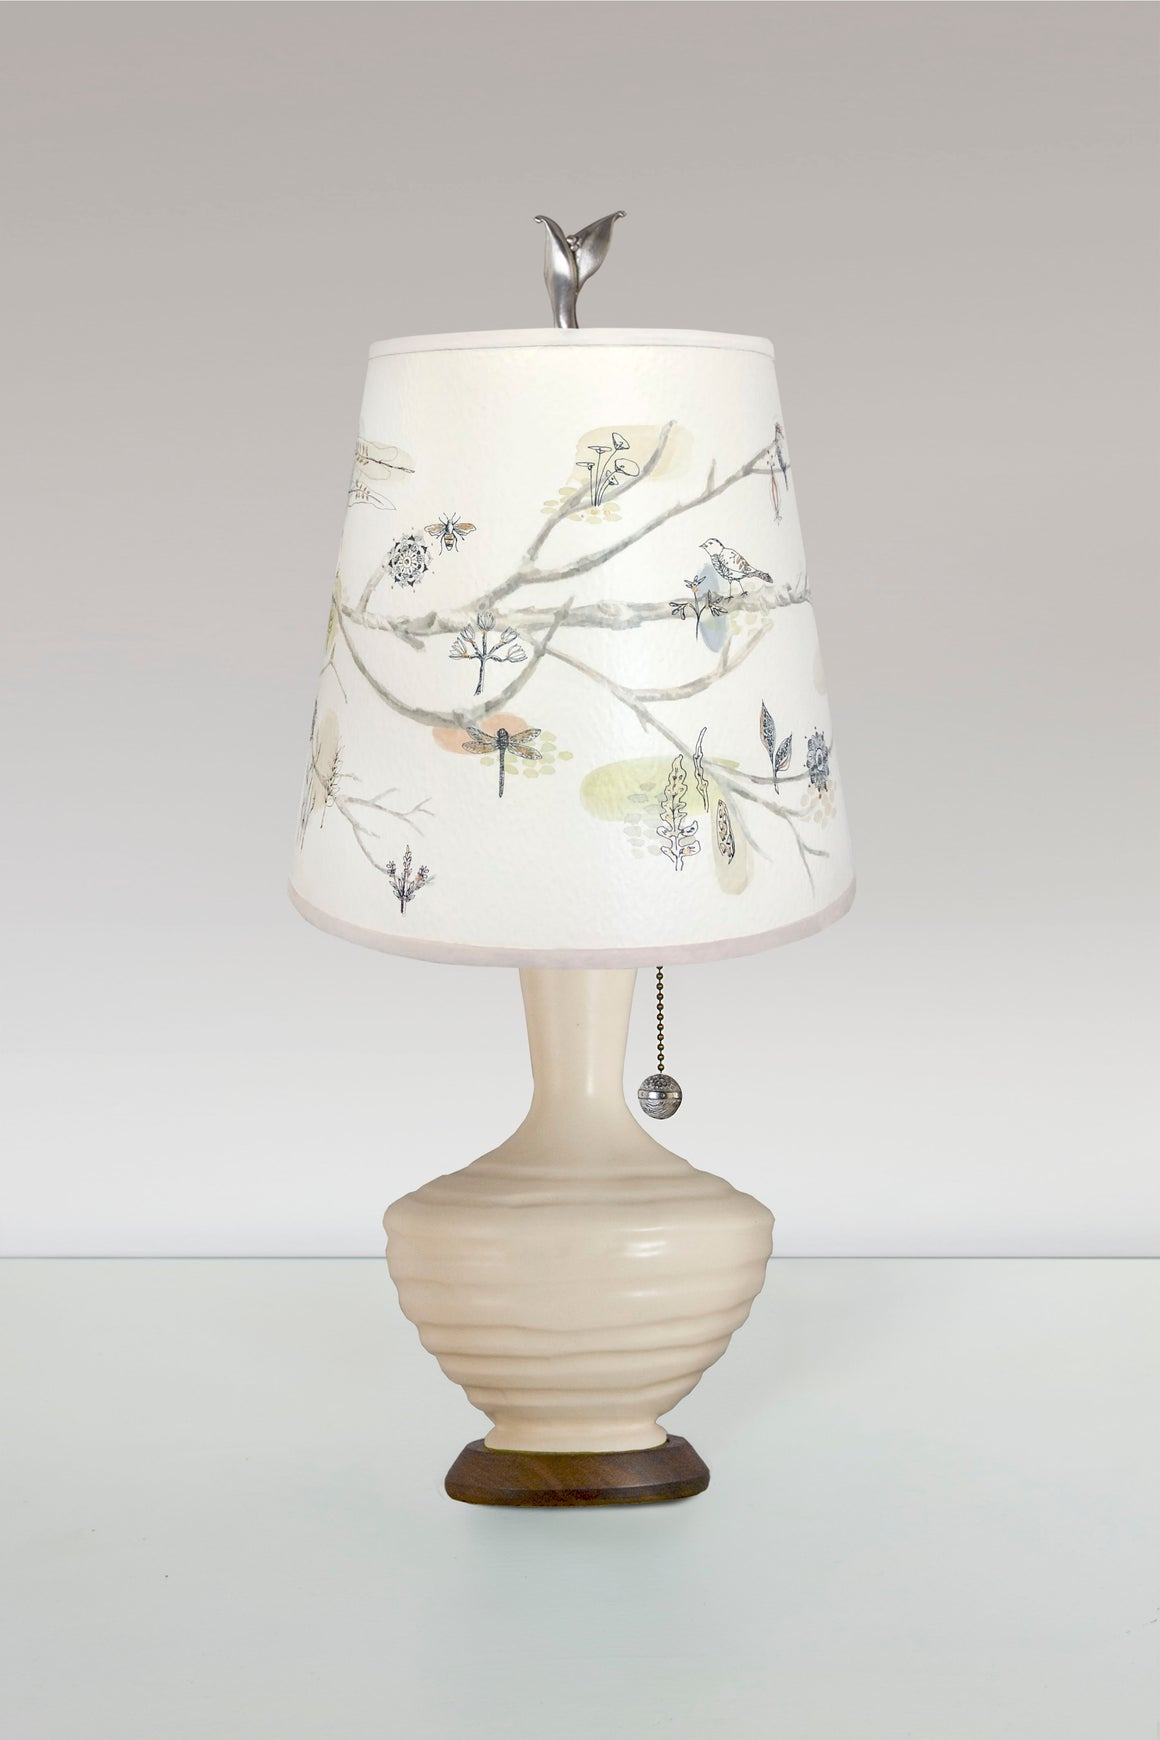 Ivory Ceramic Table Lamp with Small Drum Shade in Artful Branch